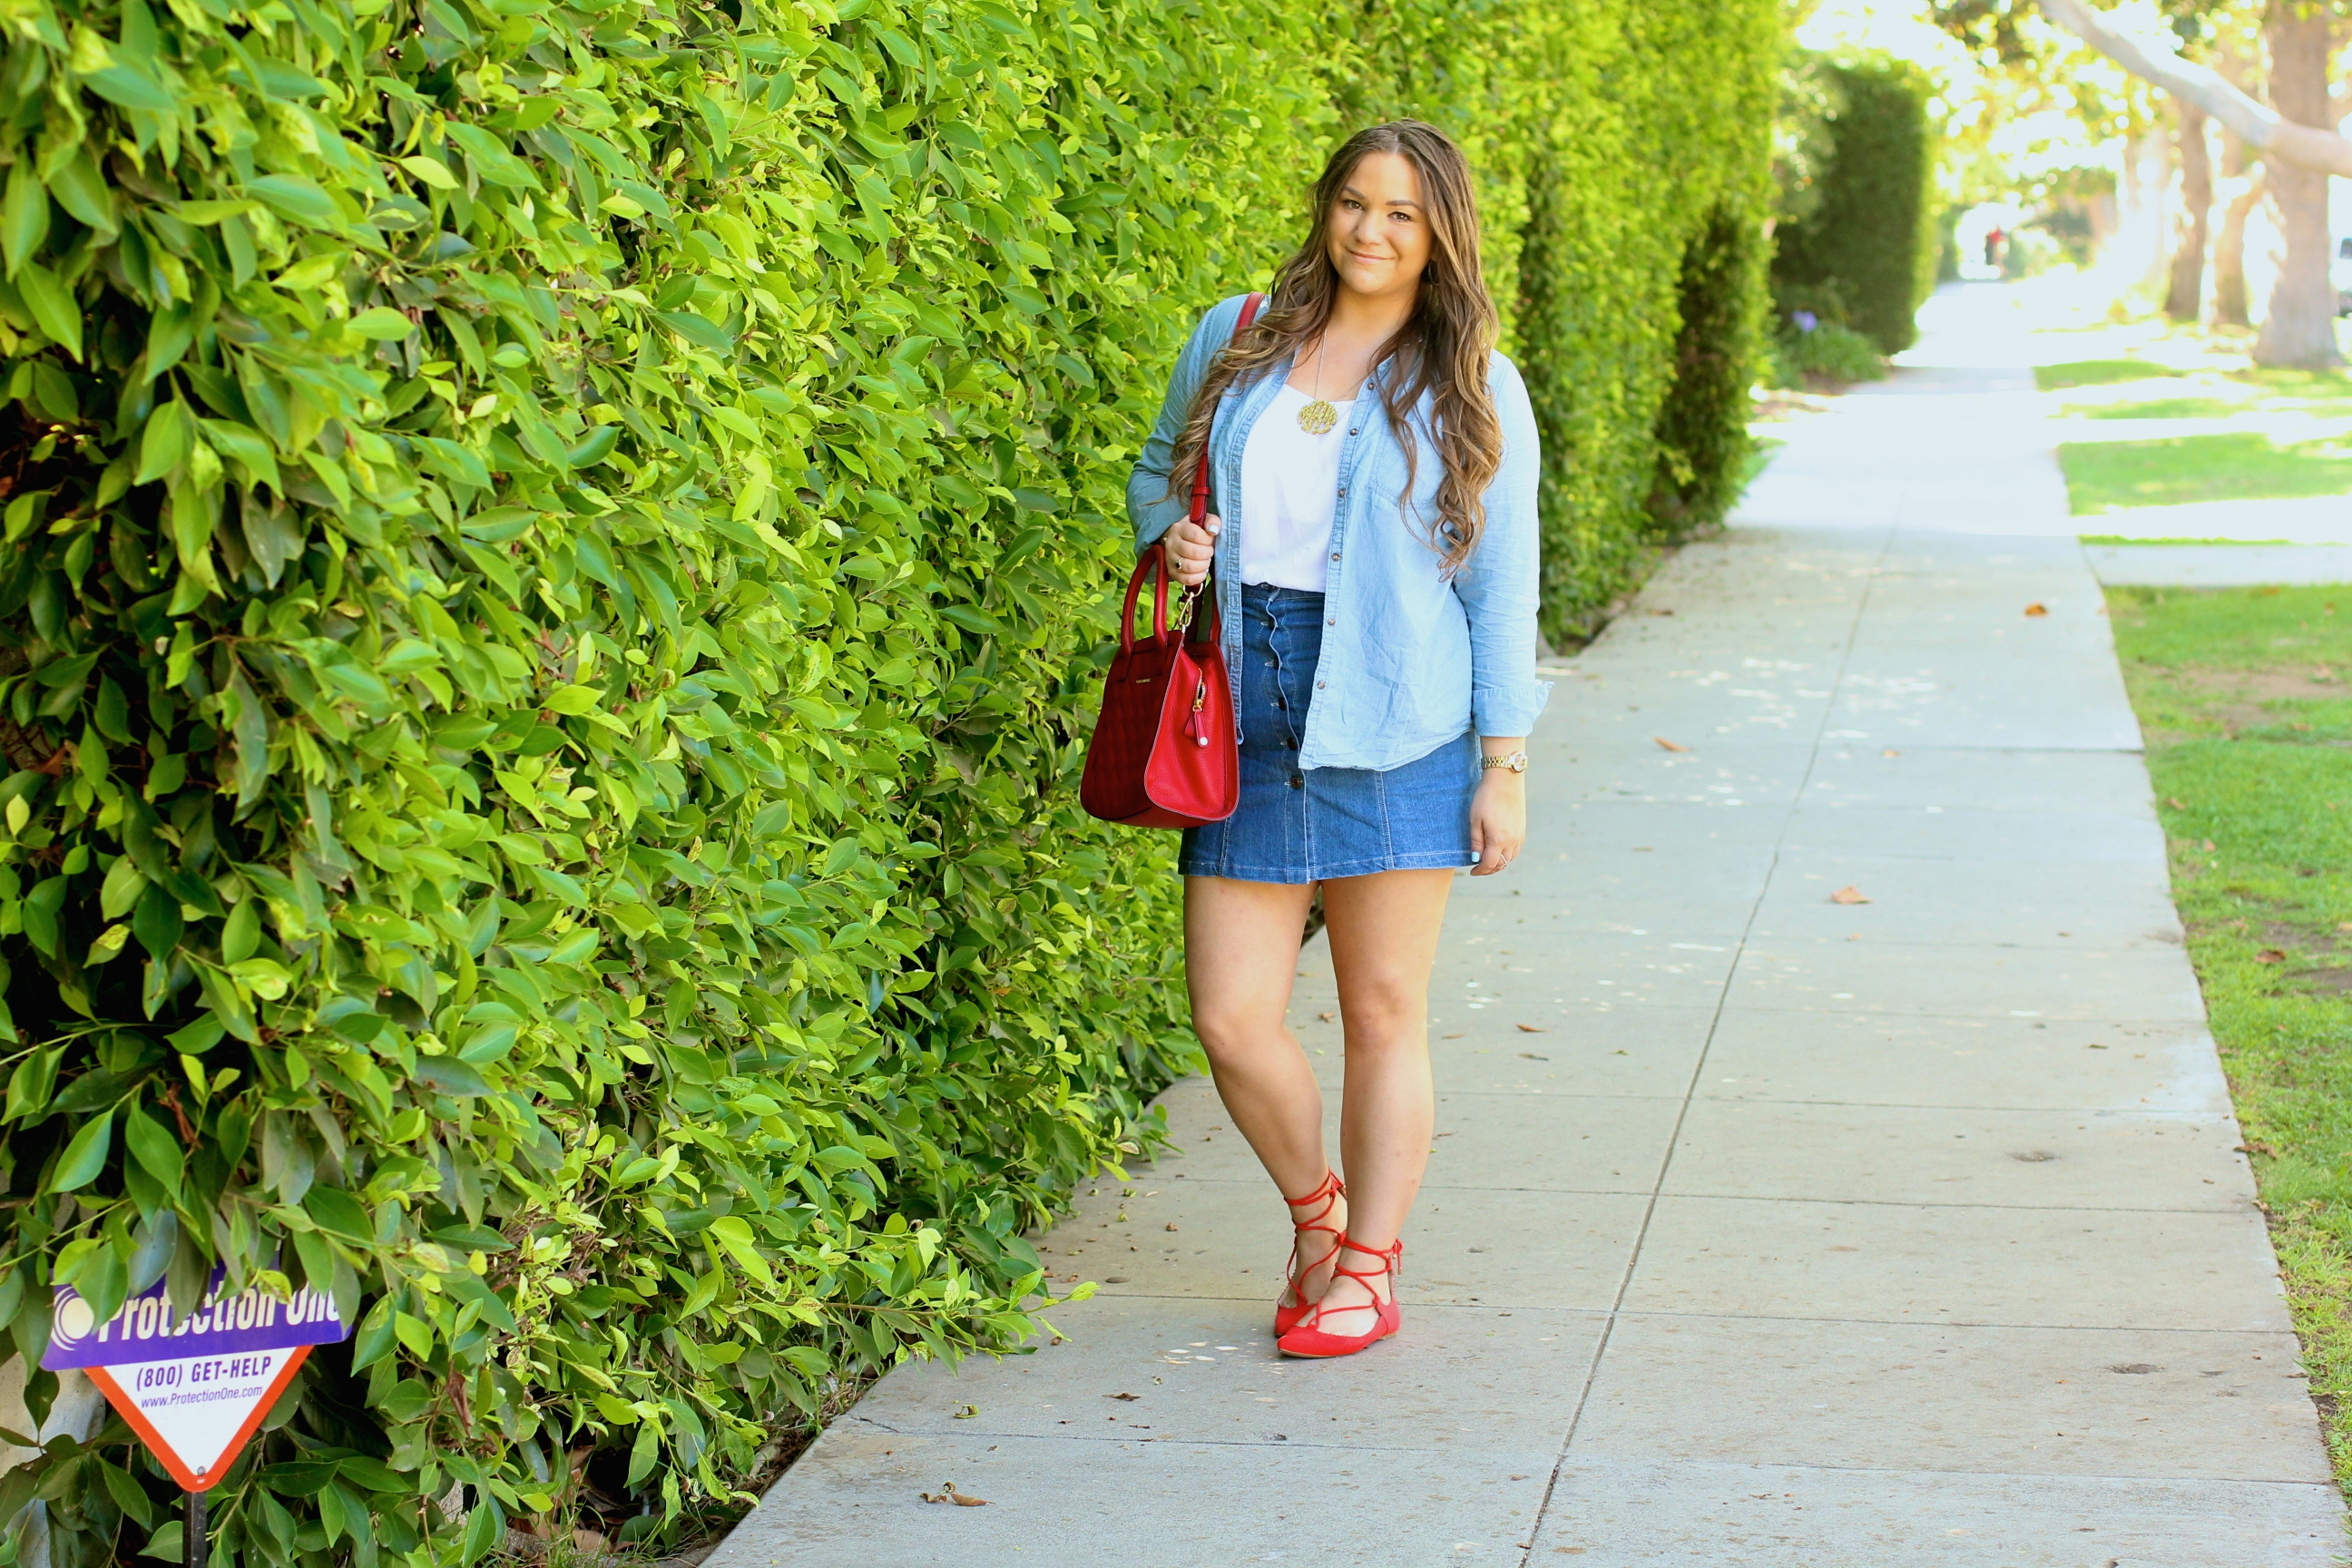 missyonmadison, melissa tierney, fashion blog, fashion blogger, style blog, style blogger, fall style, hello november, red lace up flats, topshop, topshop flats, denim skirt, denim button skirt, white chiffon tank top, chambray shirt, monogram necklace, baublebar necklace, baublebar monogram necklace, la blogger, brunette hair, denim front button skirt, red flats, lace up flats, vera bradley, red leather satchel, red vera bradley satchel,